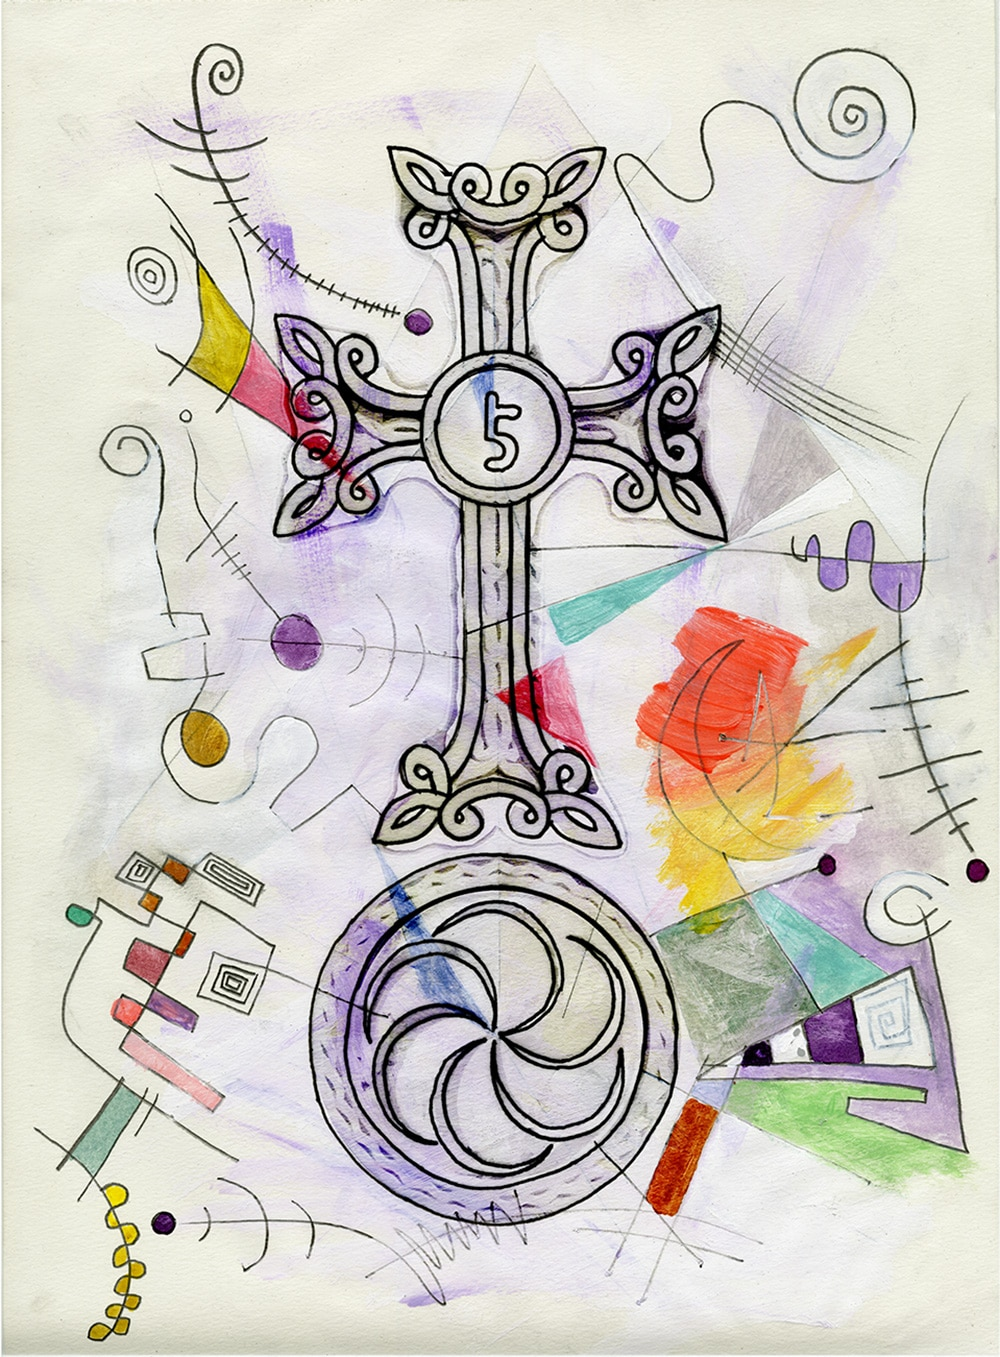 Ascend together, a contemporary cross stone drawing by gregory beylerian